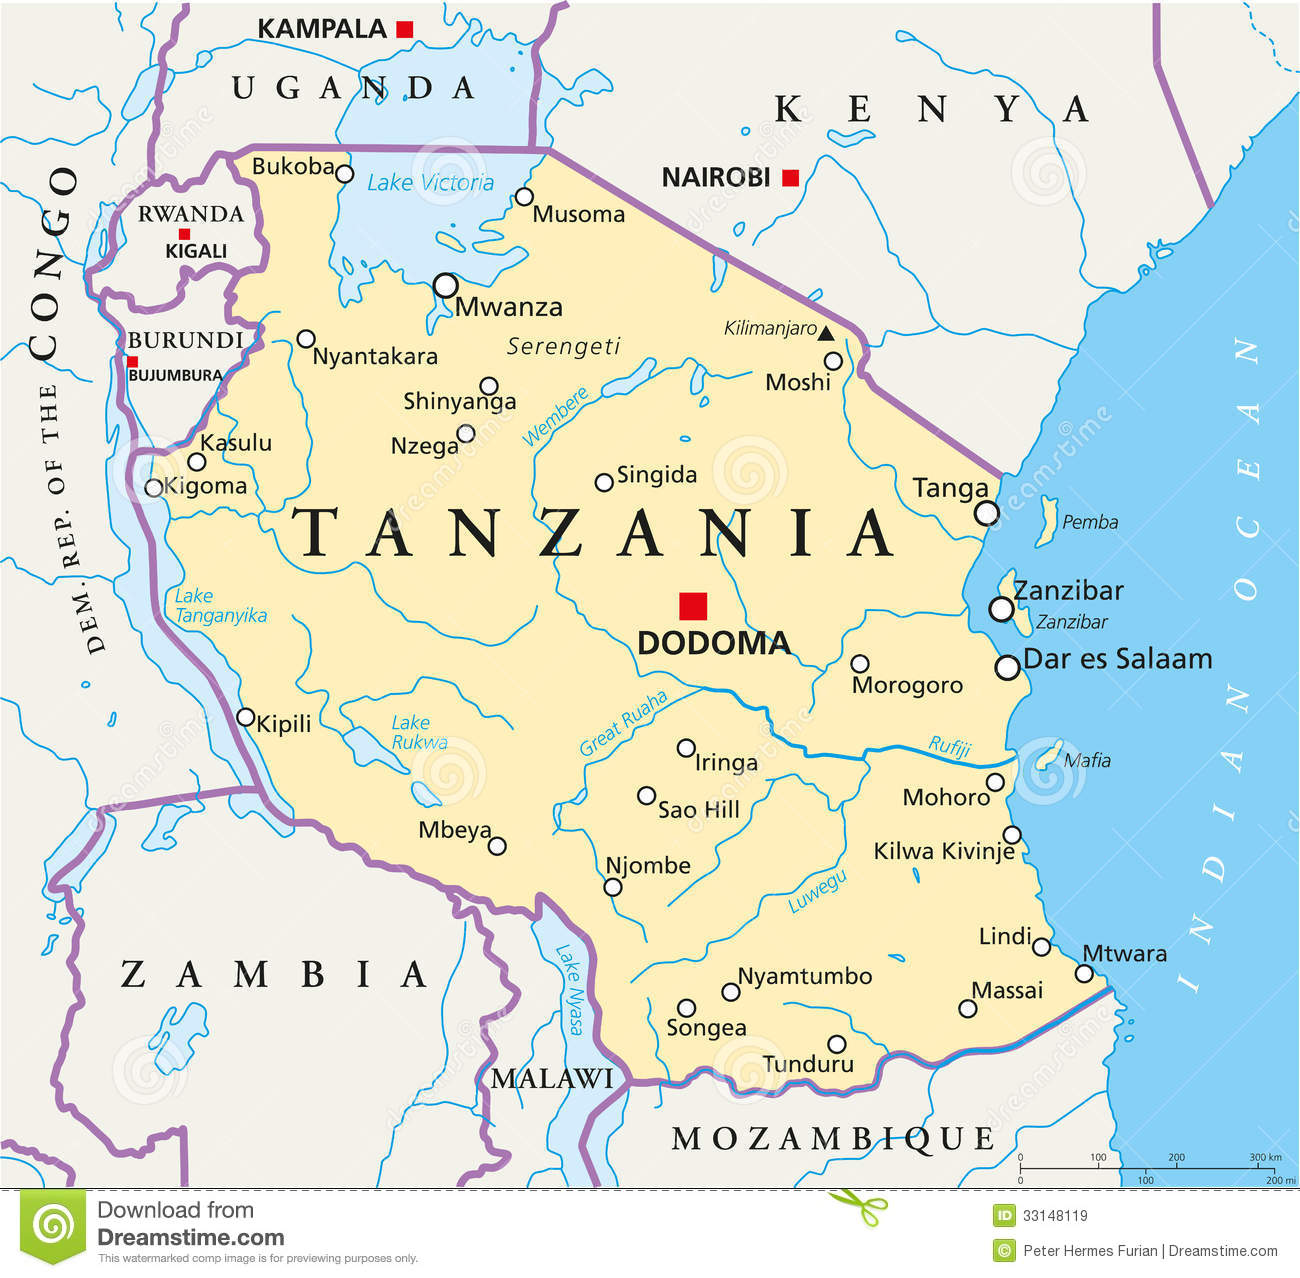 Tanzania Political Map Royalty Free Stock Images - Image: 33148119 Dodoma Map